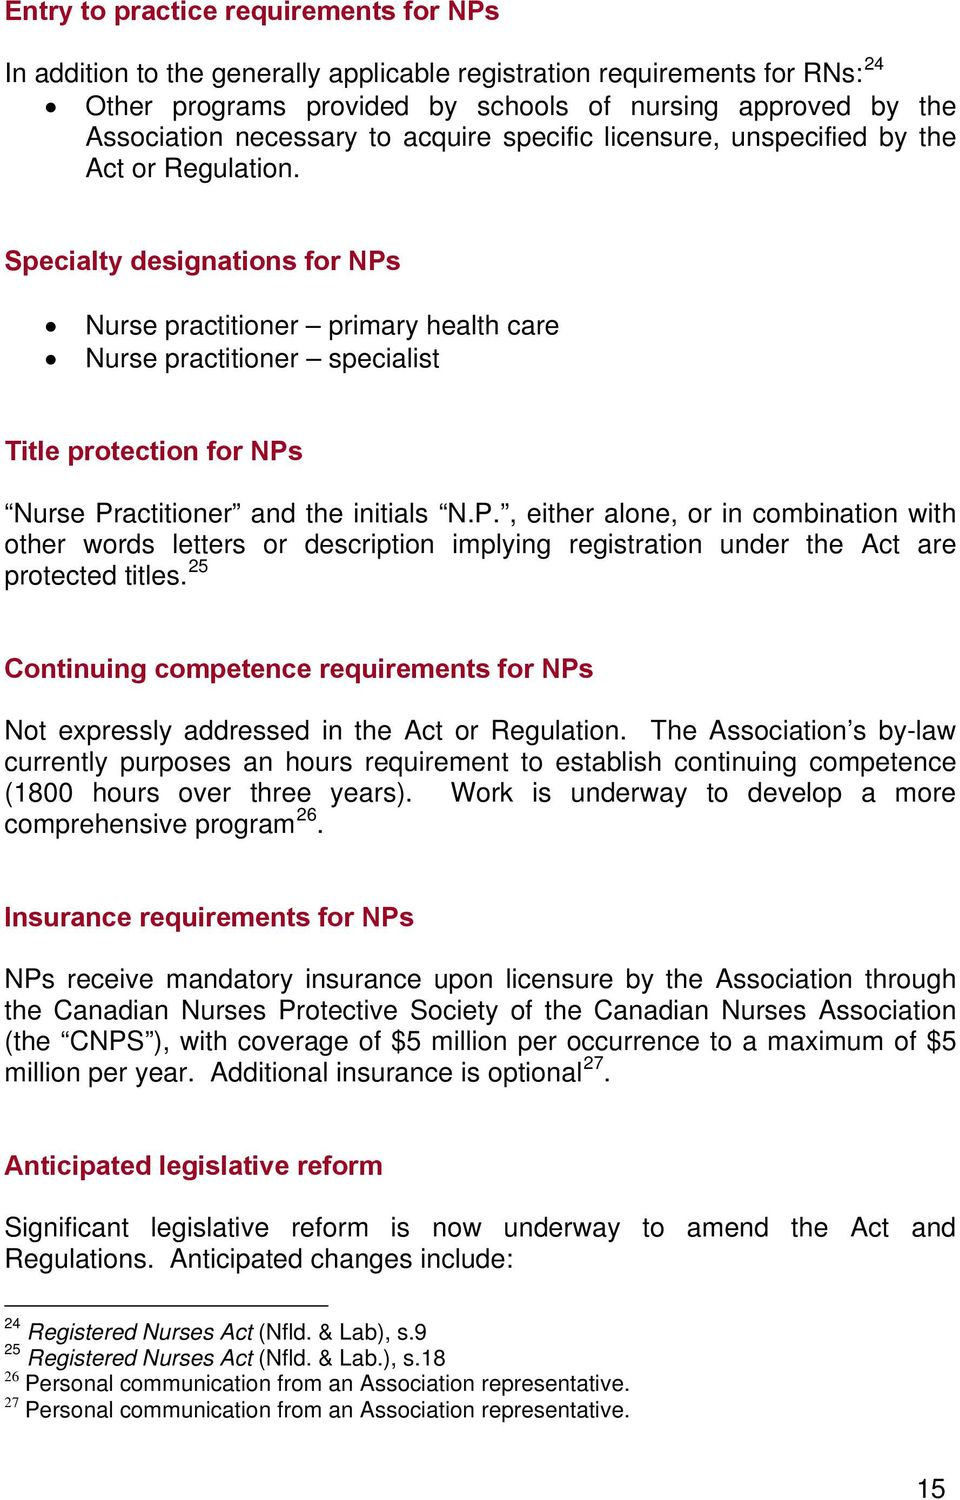 Specialty designations for NPs Nurse practitioner primary health care Nurse practitioner specialist Title protection for NPs Nurse Practitioner and the initials N.P., either alone, or in combination with other words letters or description implying registration under the Act are protected titles.